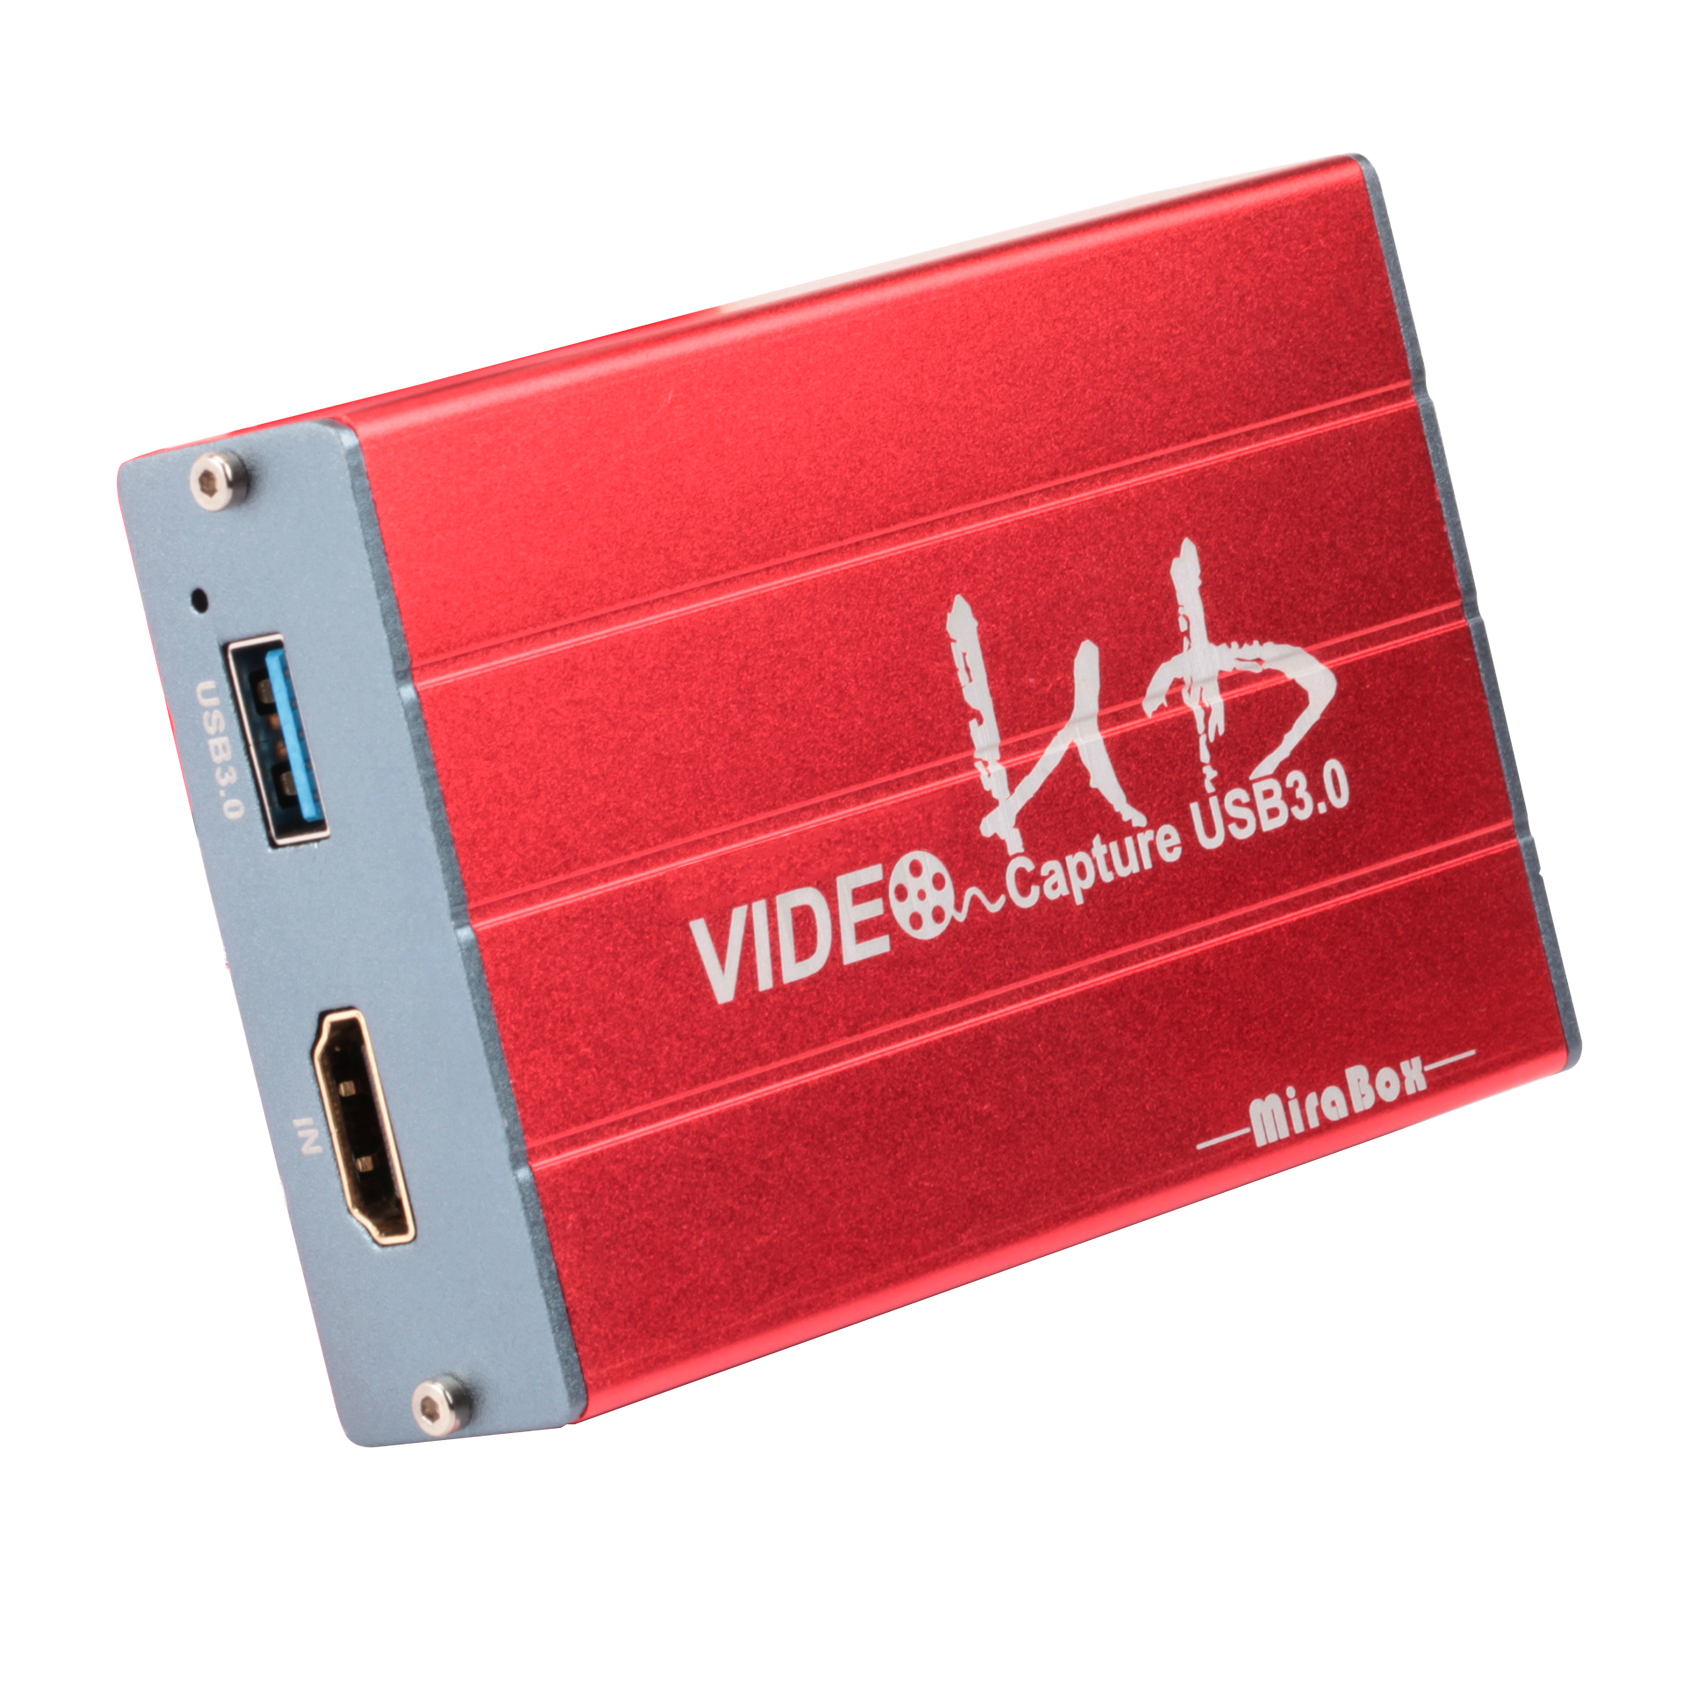 MiraBox USB3.0 HDMI vedeo Capture Card 1080P 60FPS Portable HD Video Recorder Device Live Streaming for Mac Windows Linux System